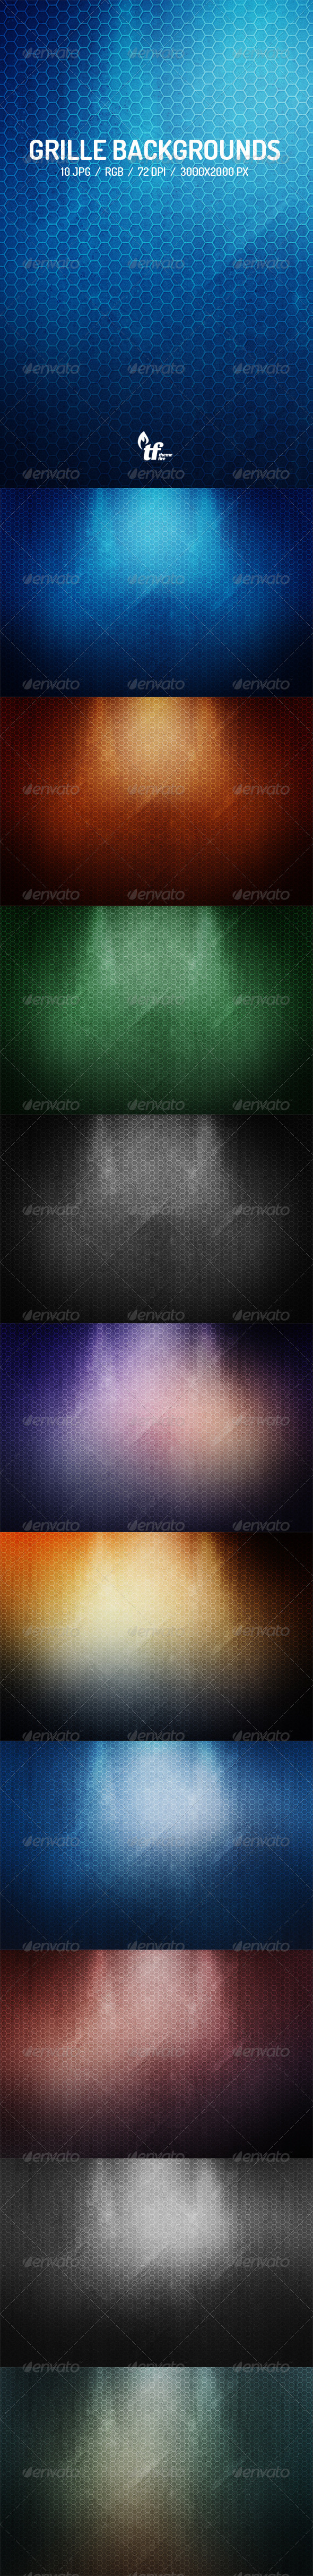 GraphicRiver Grille Backgrounds 7612585